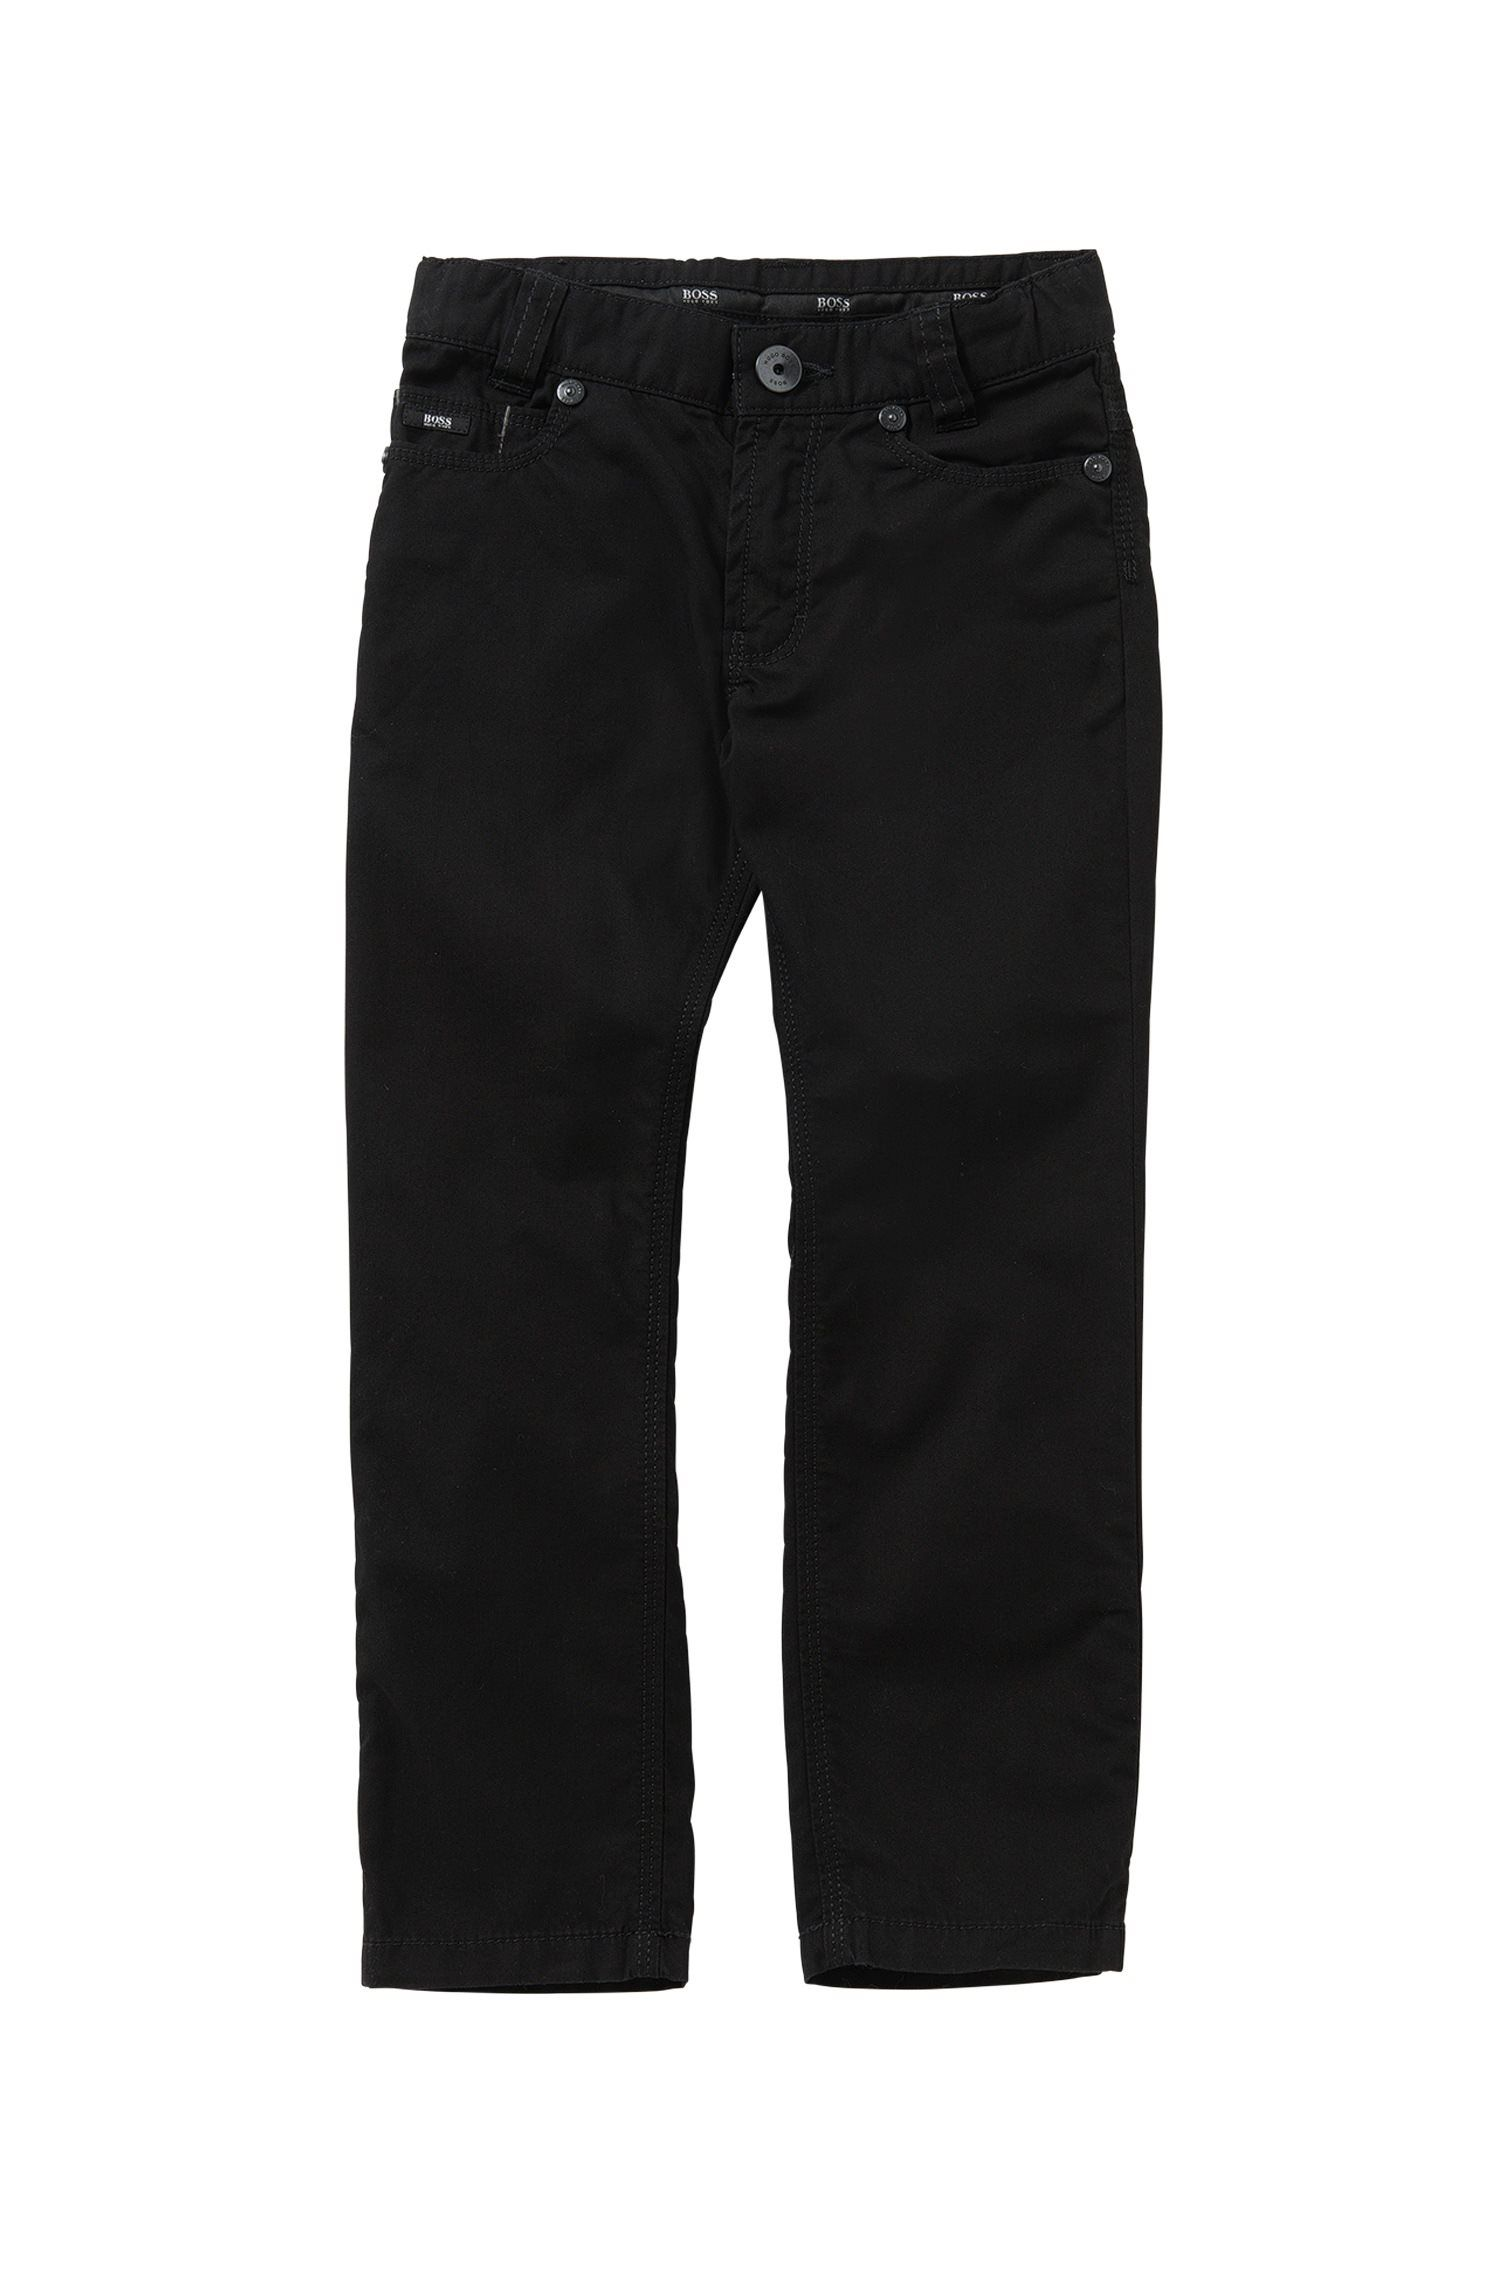 'J24393' | Boys Stretch Cotton Twill Pants